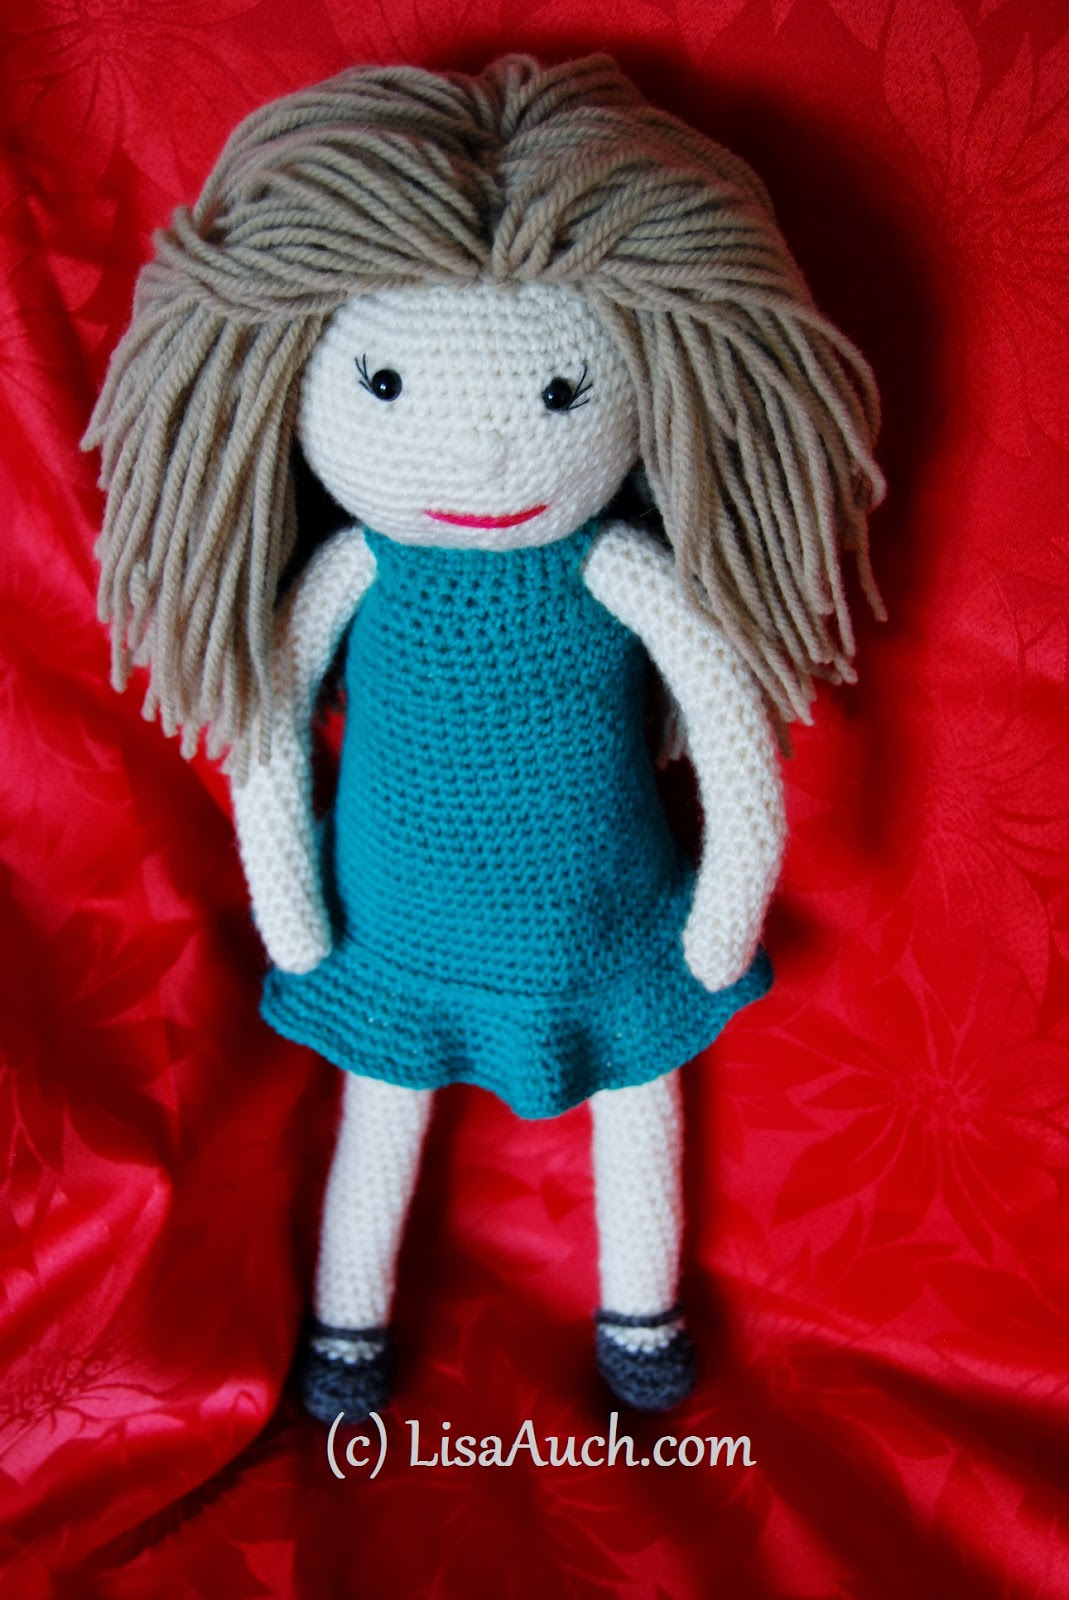 free crochet patterns for dolls - crochet doll patterns